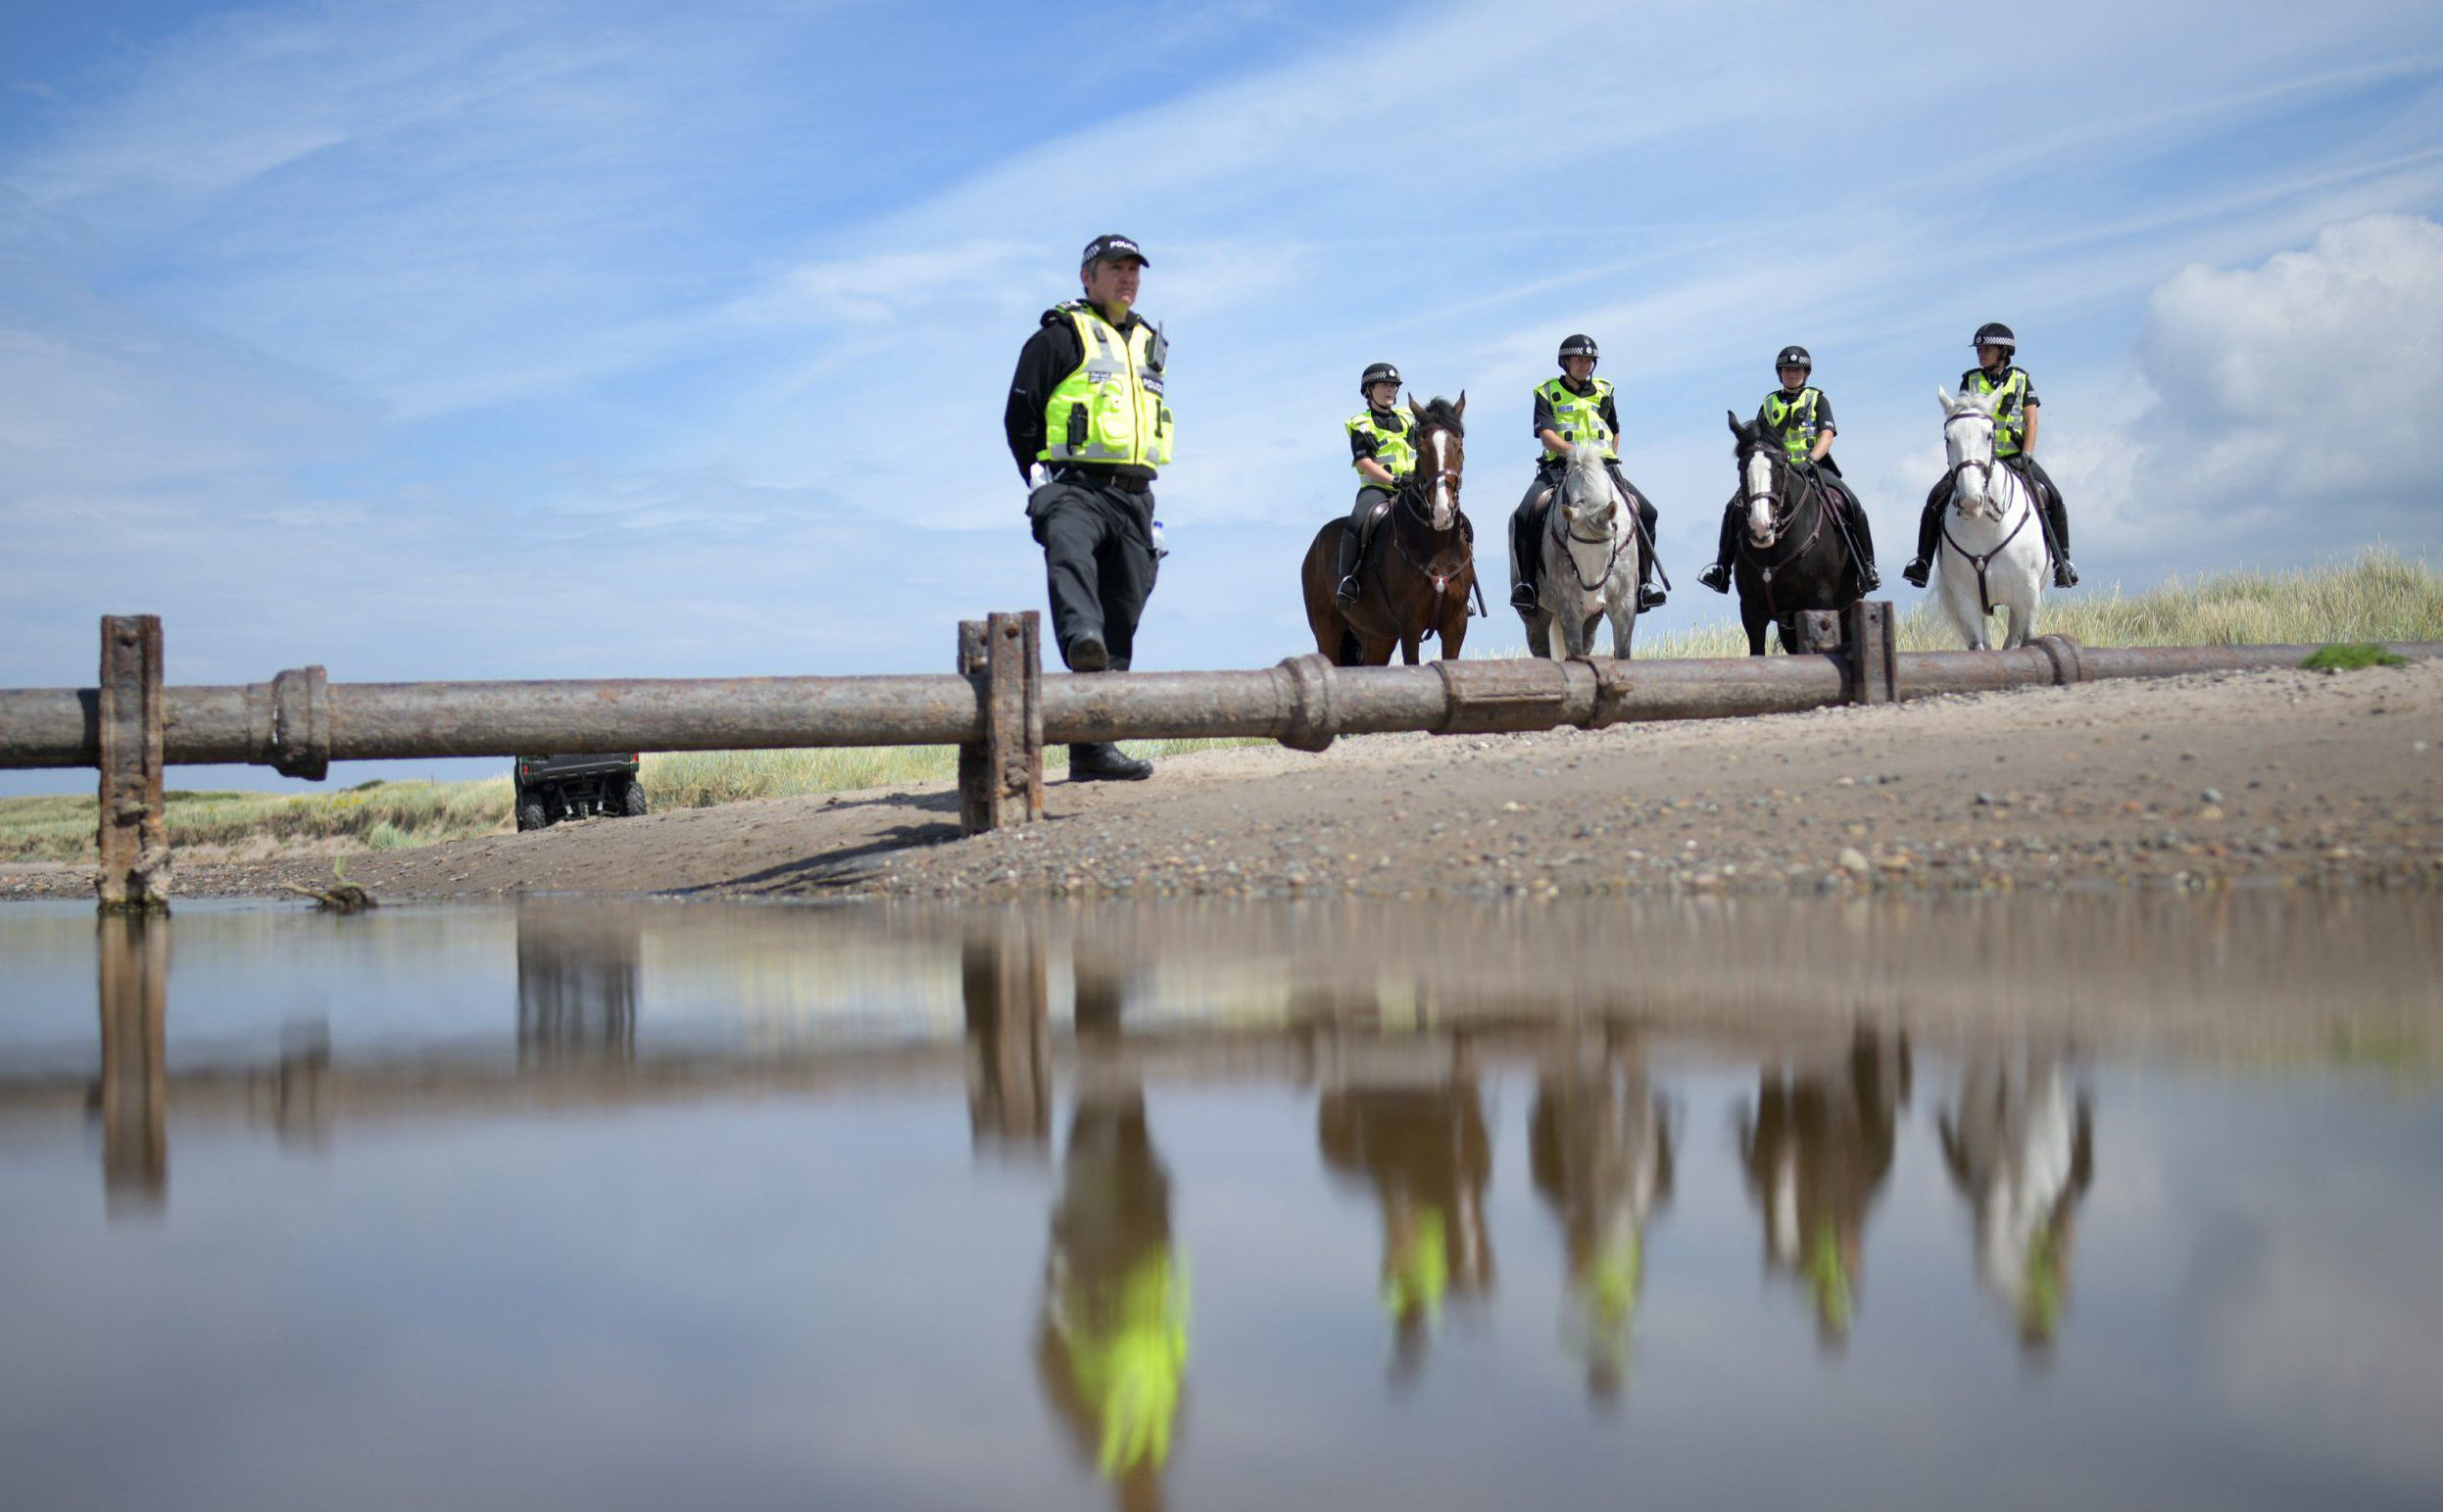 TURNBERRY, SCOTLAND - JULY 14: Mounted police patrol the beach outside near Trump Turnberry Luxury Collection Resort during the U.S. President's visit to the United Kingdom on July 14, 2018 in Turnberry, Scotland. The President of the United States and First Lady, Melania Trump on their first official visit to the UK after yesterday's meetings with the Prime Minister and the Queen is in Scotland for private weekend stay at his Turnberry. (Photo by Leon Neal/Getty Images)